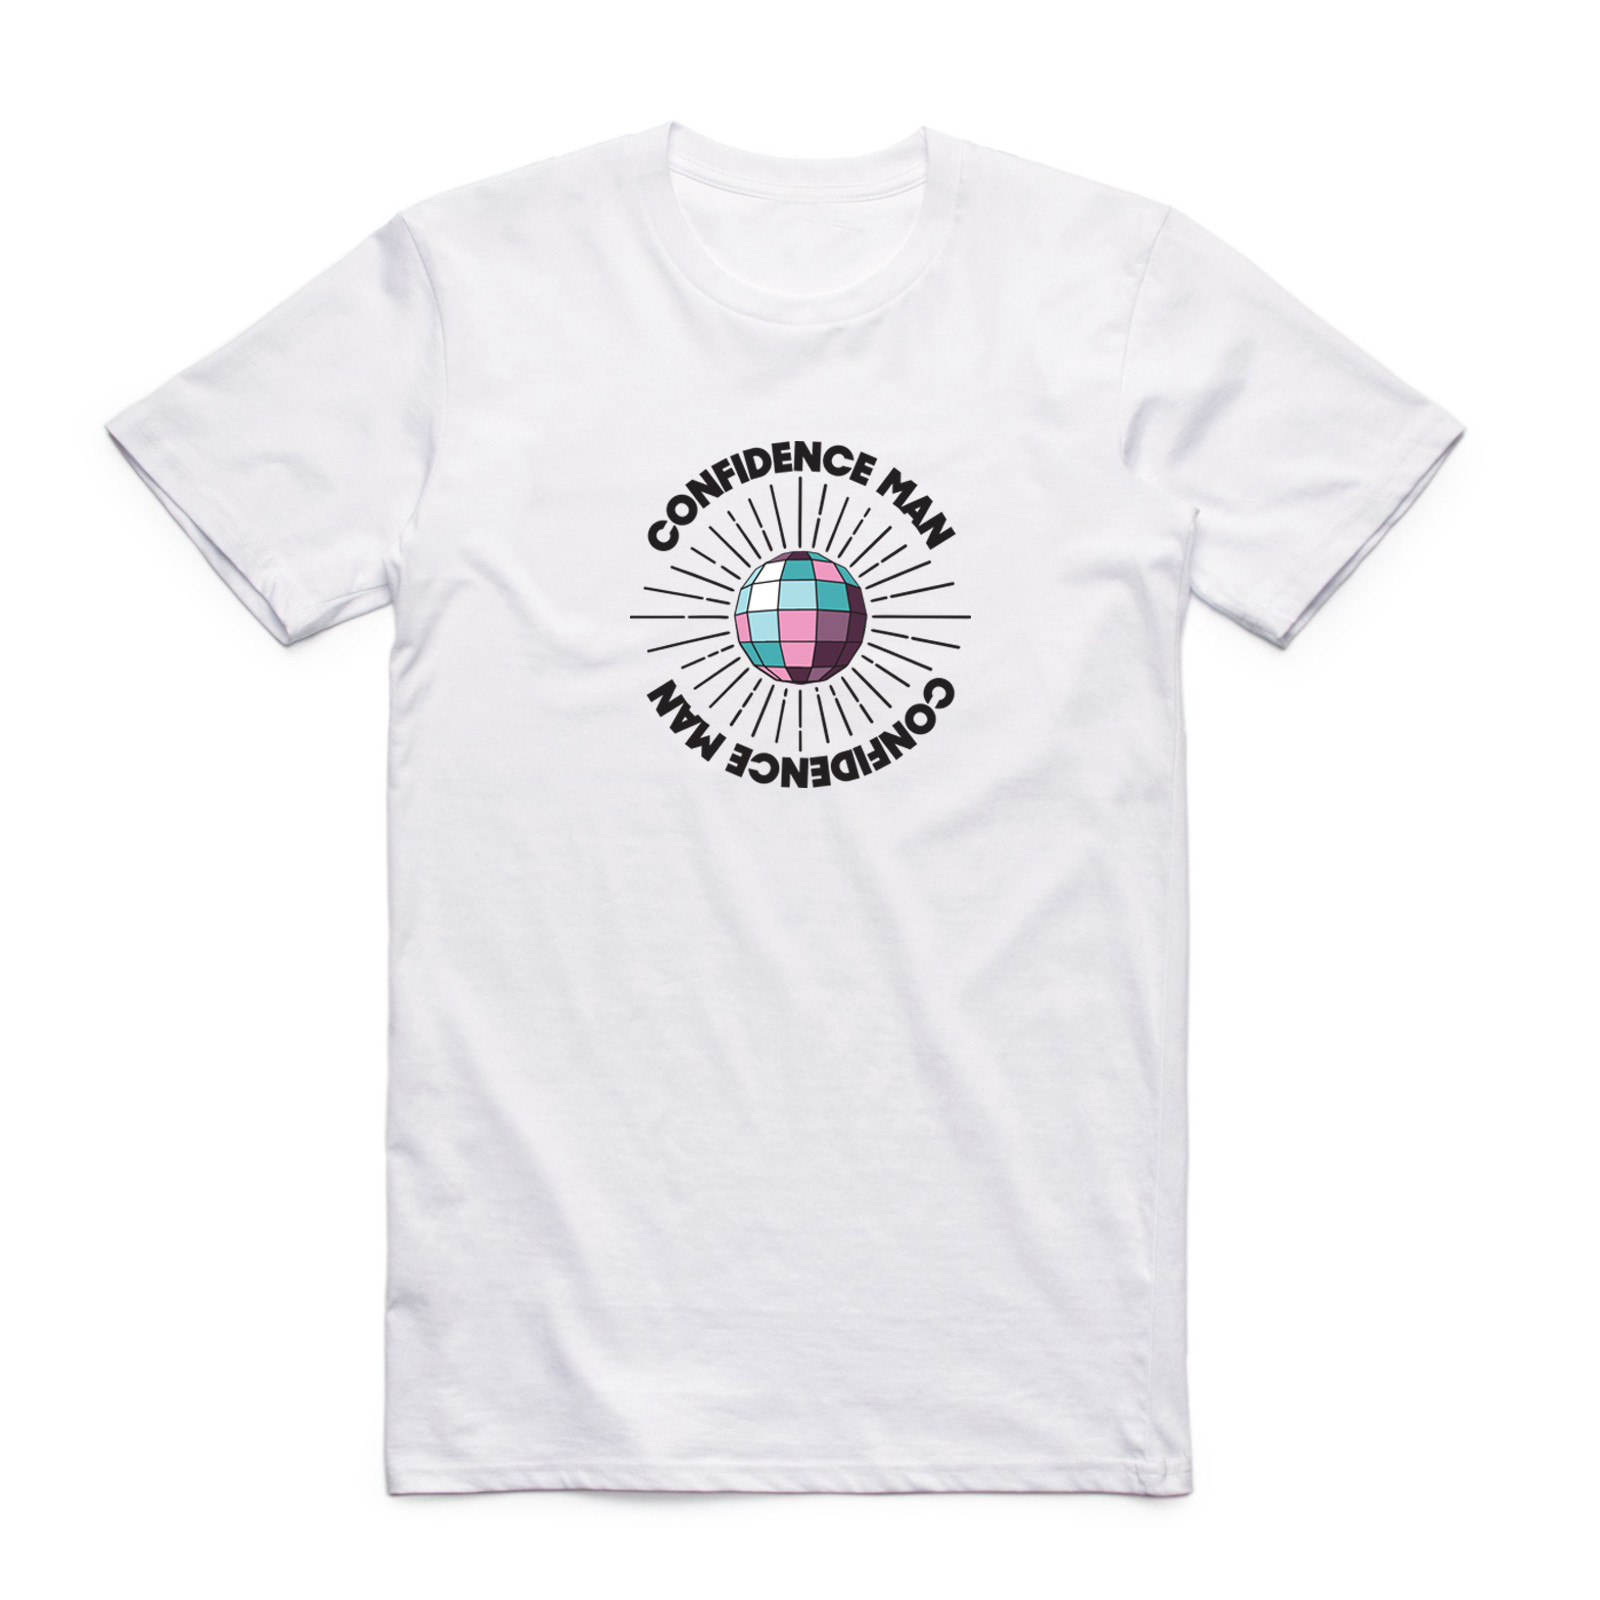 Confidence Man - Mirrorball White Tee